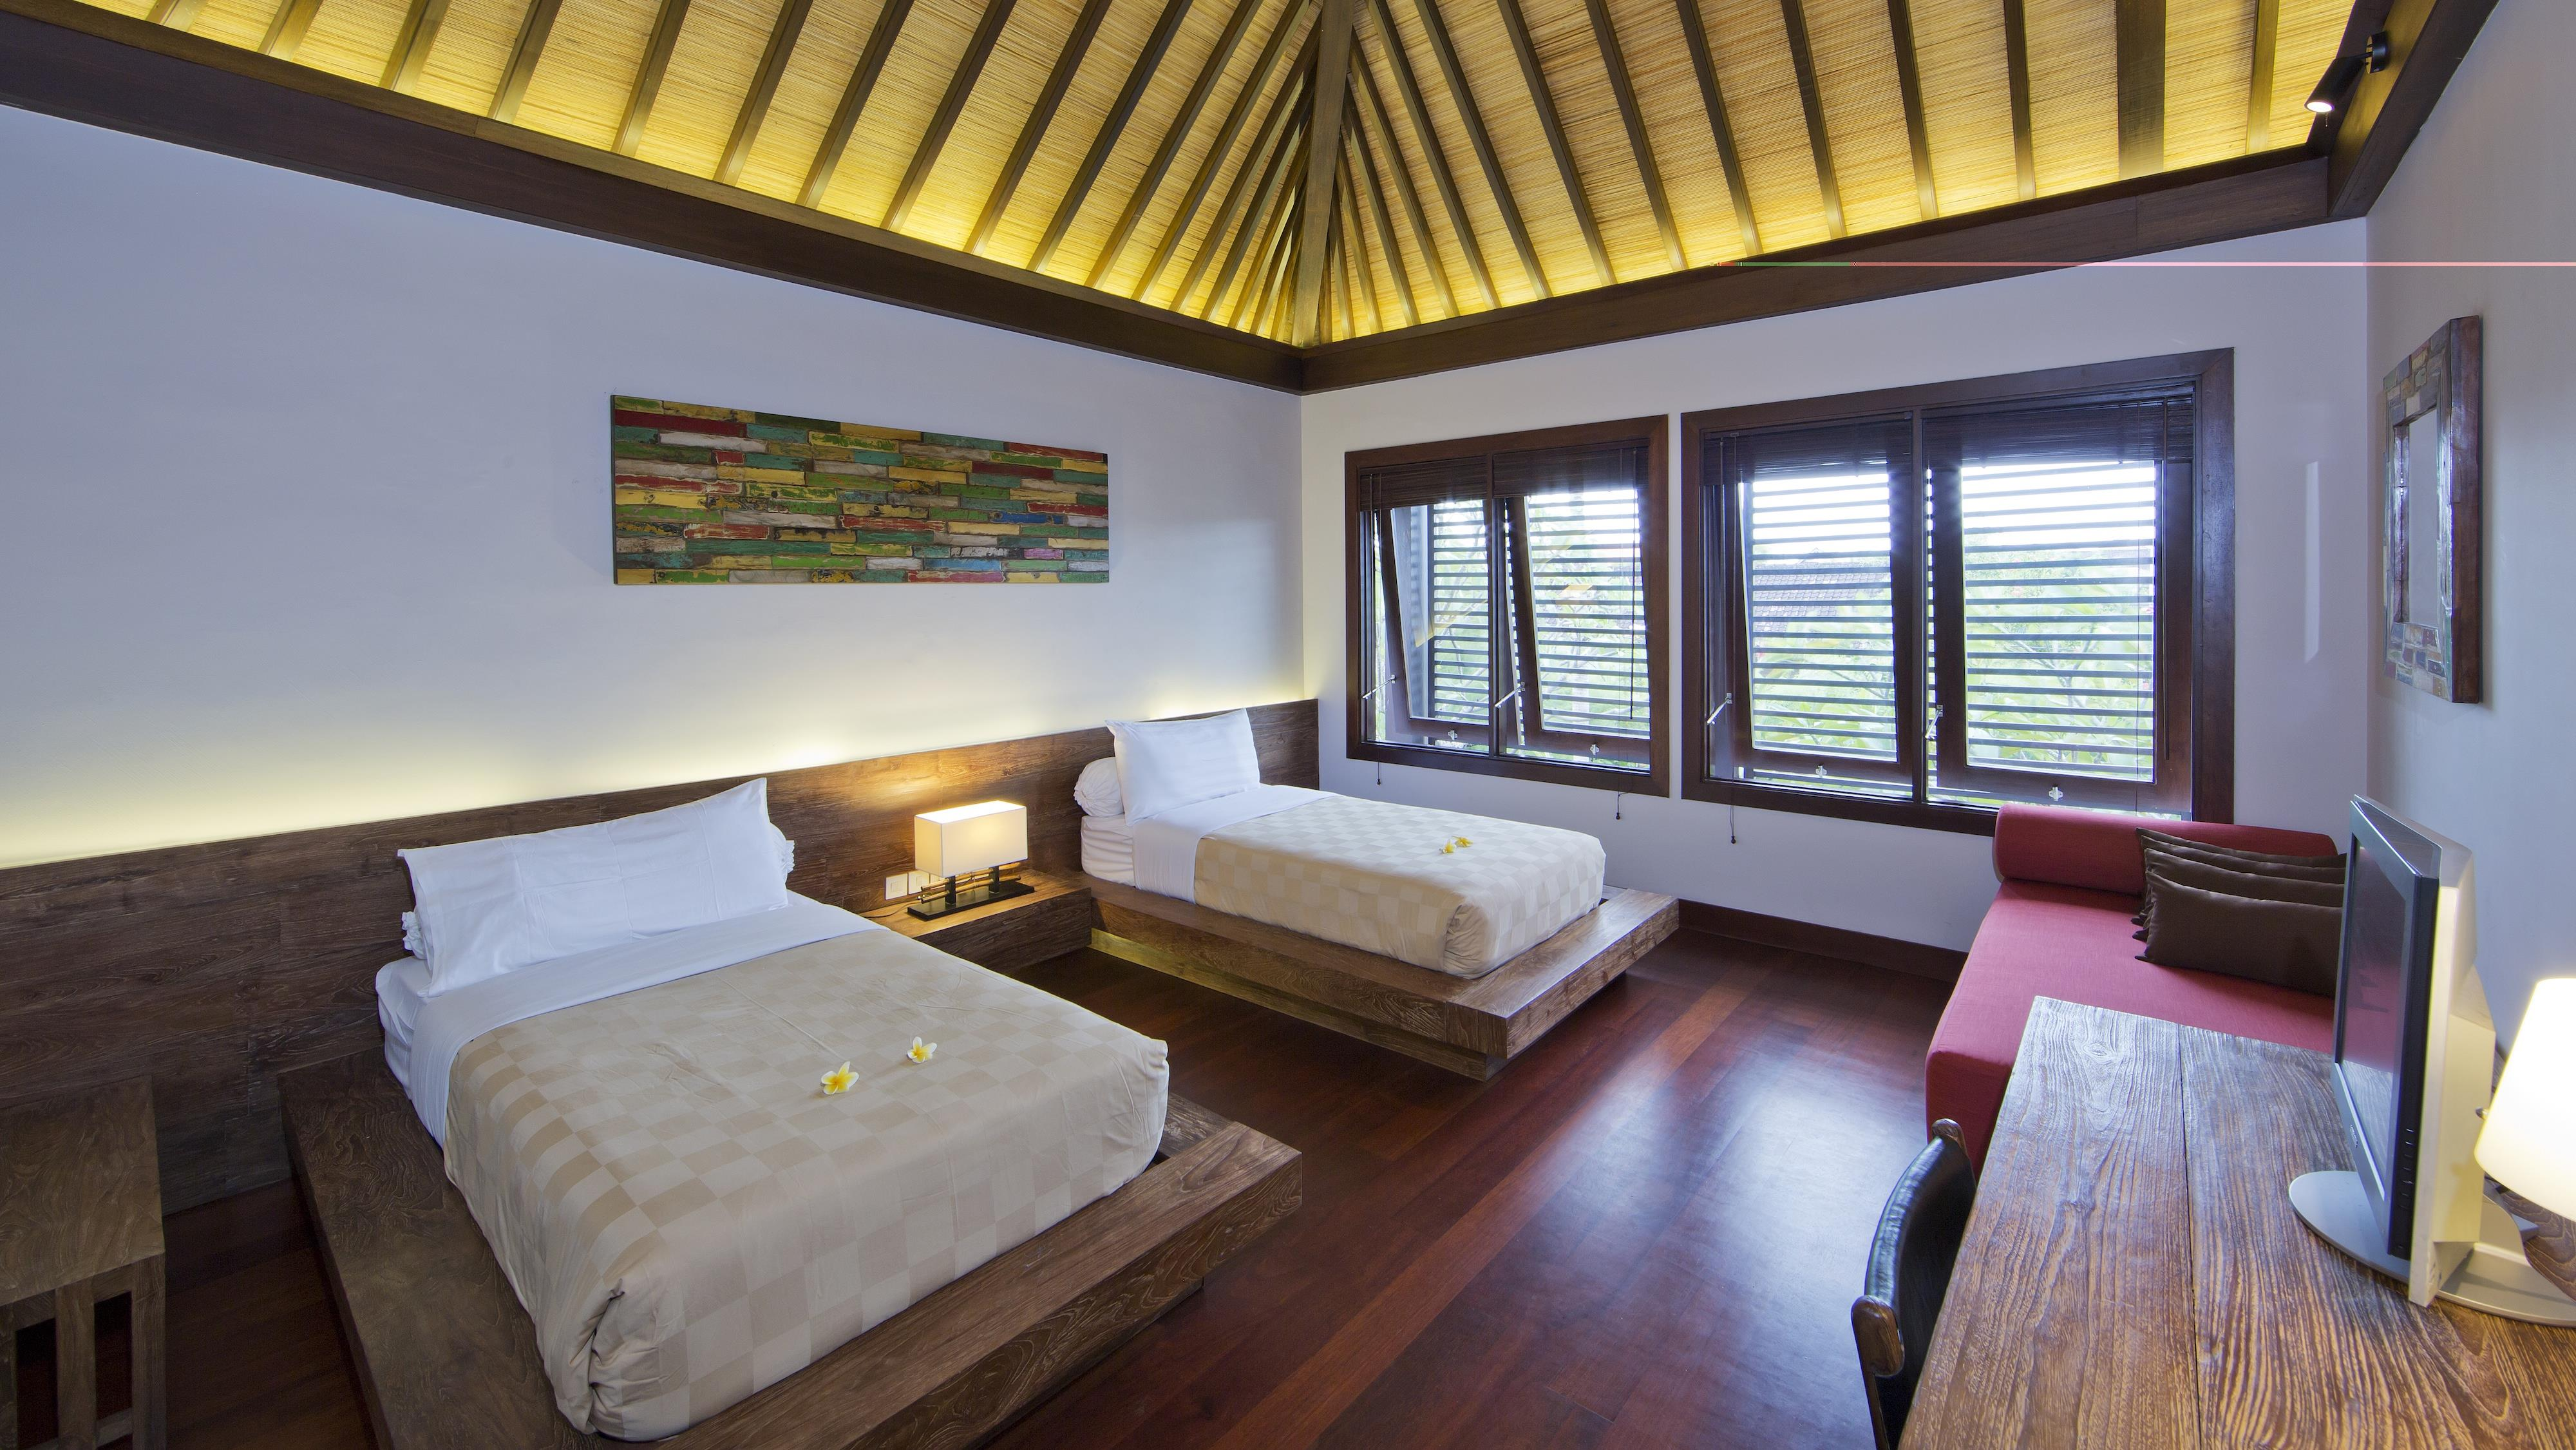 Twin Bedroom with Sofa - Villa Canthy - Seminyak, Bali